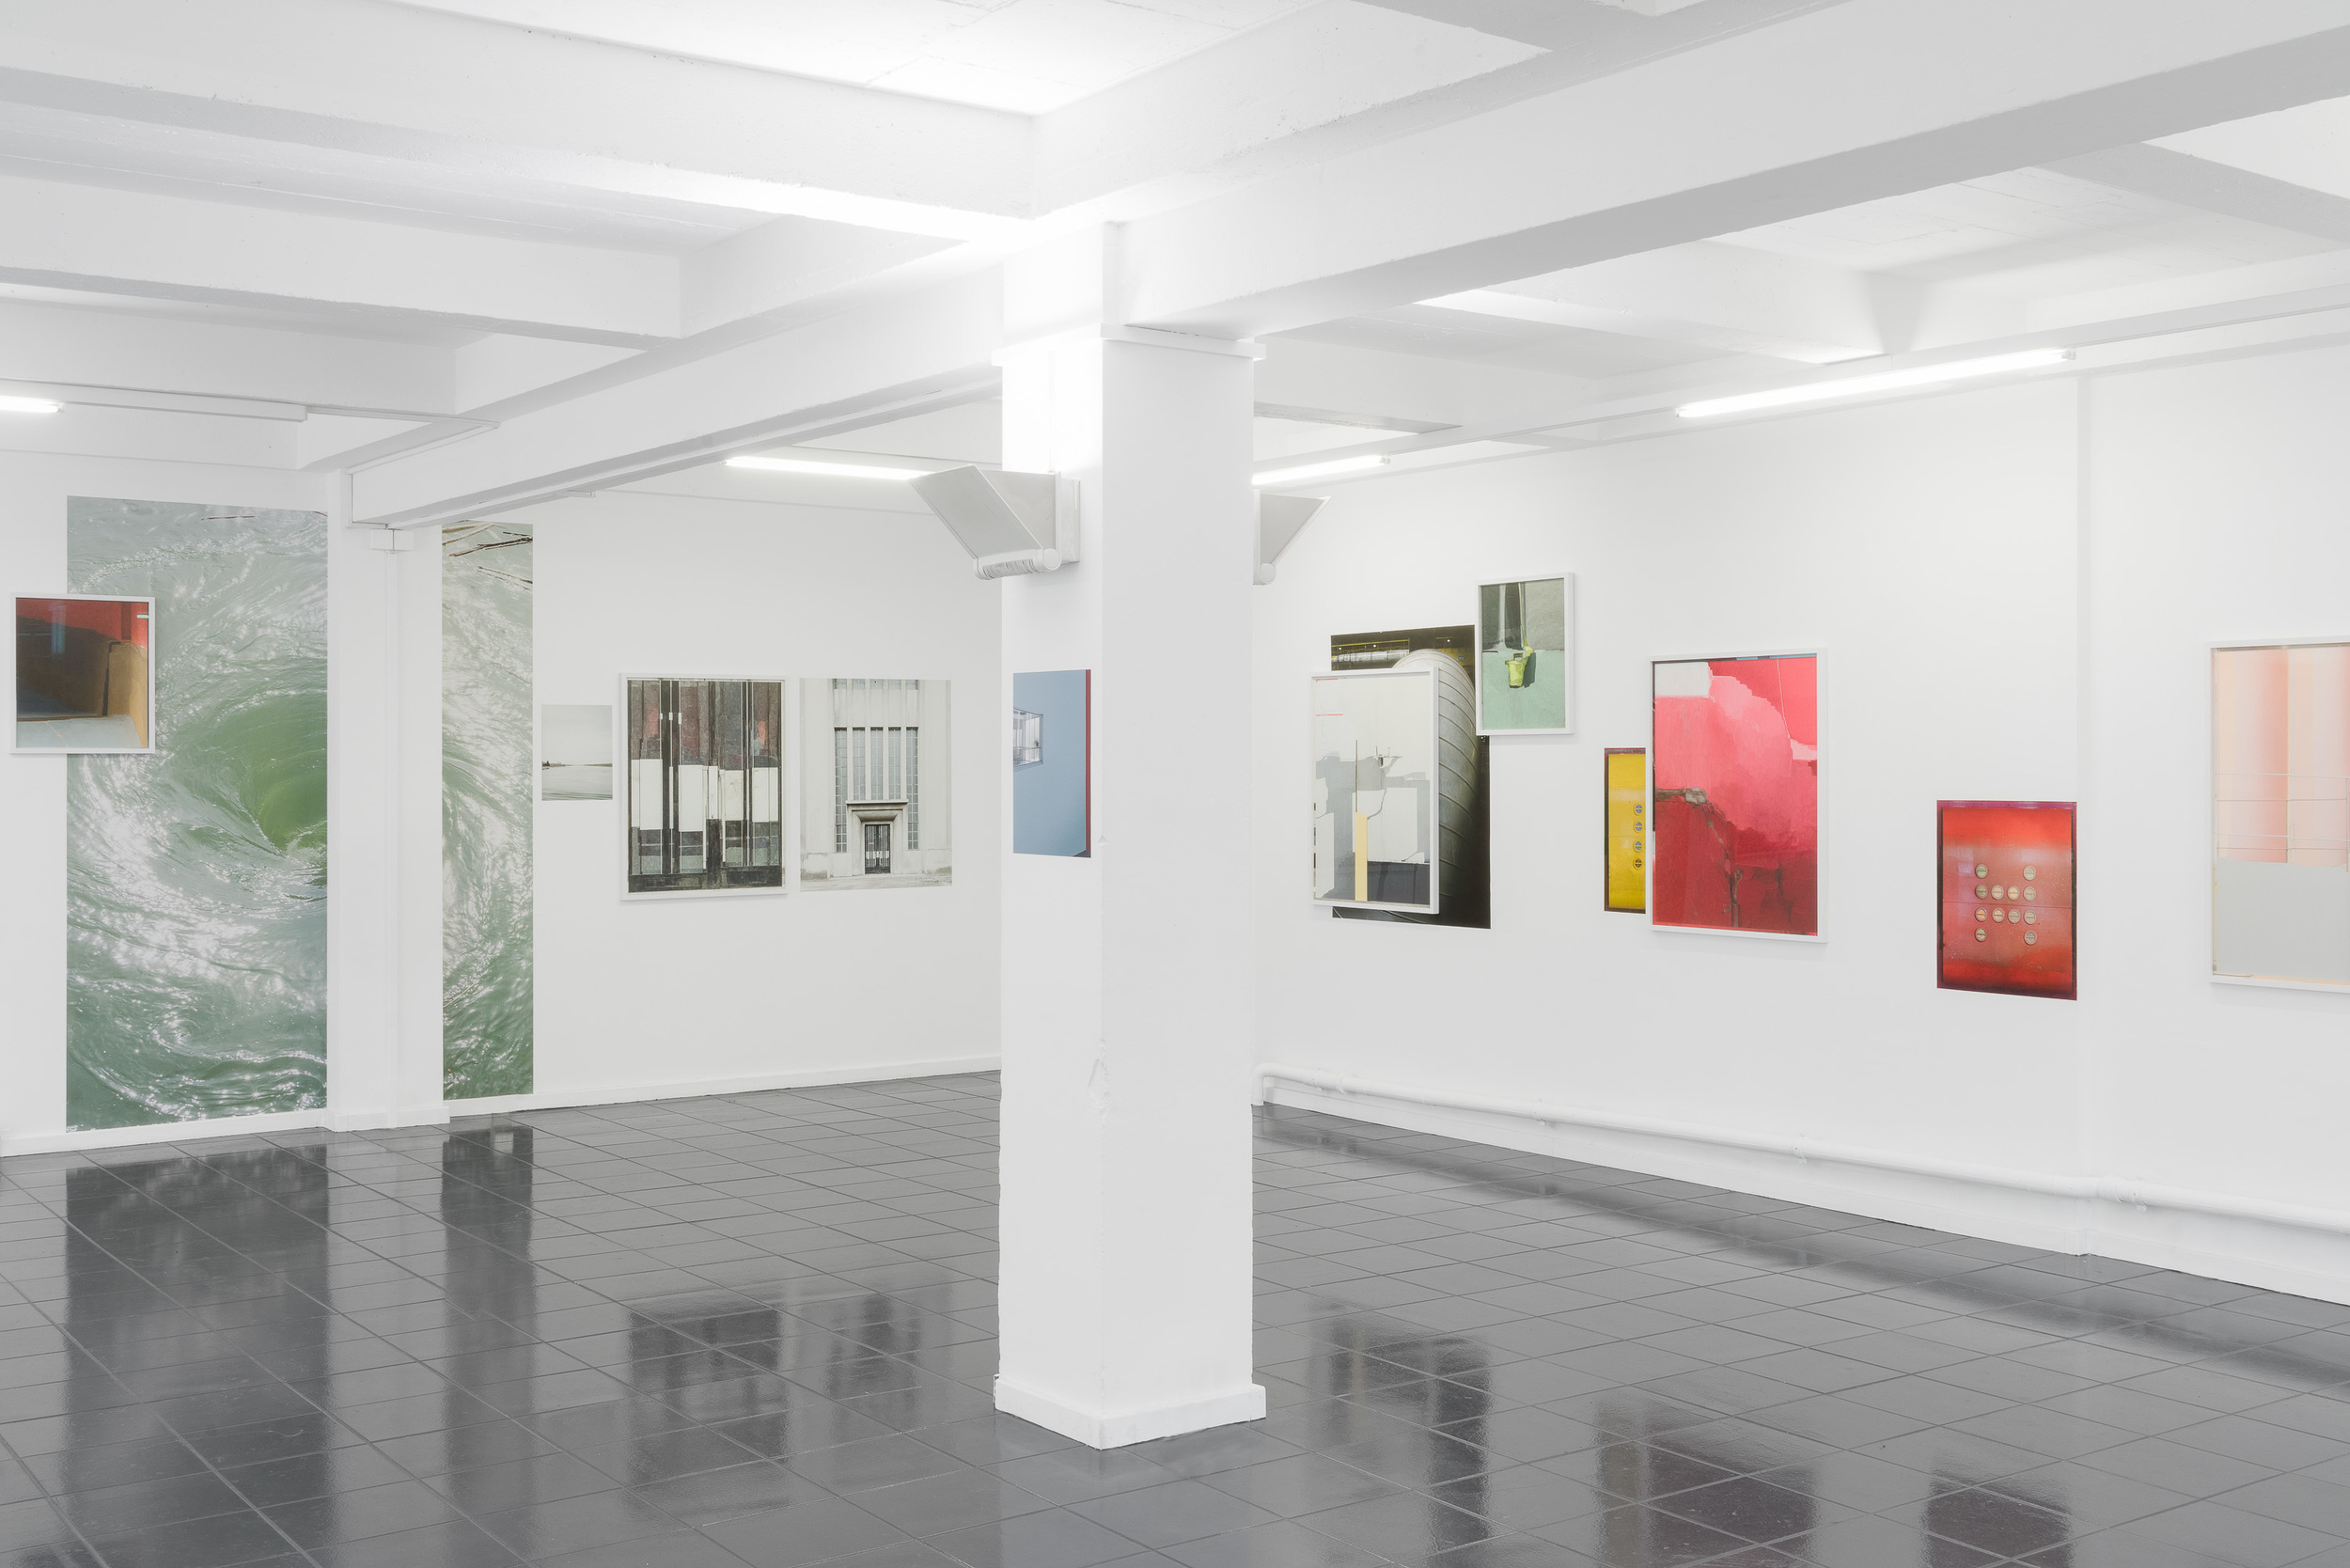 Transform (exhibition view), Galerie Heinzer Reszler, Lausanne, 2016